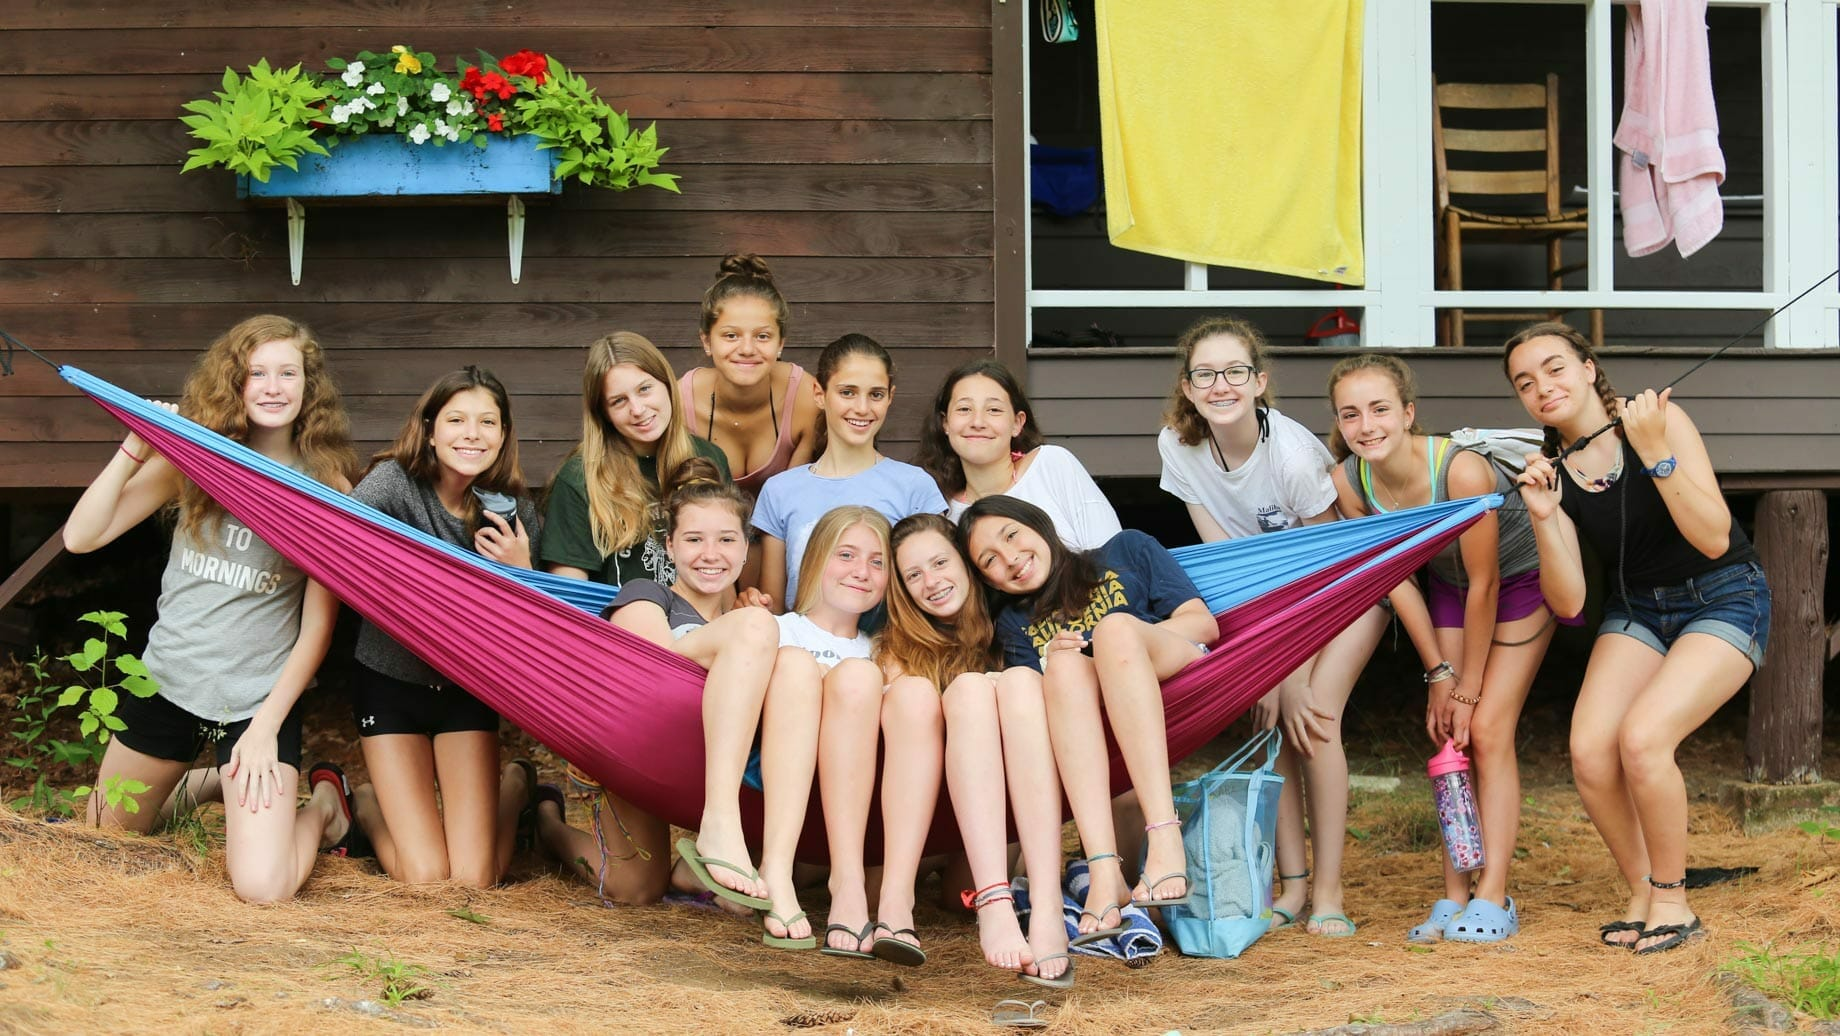 Girls posing on hammock by cabin